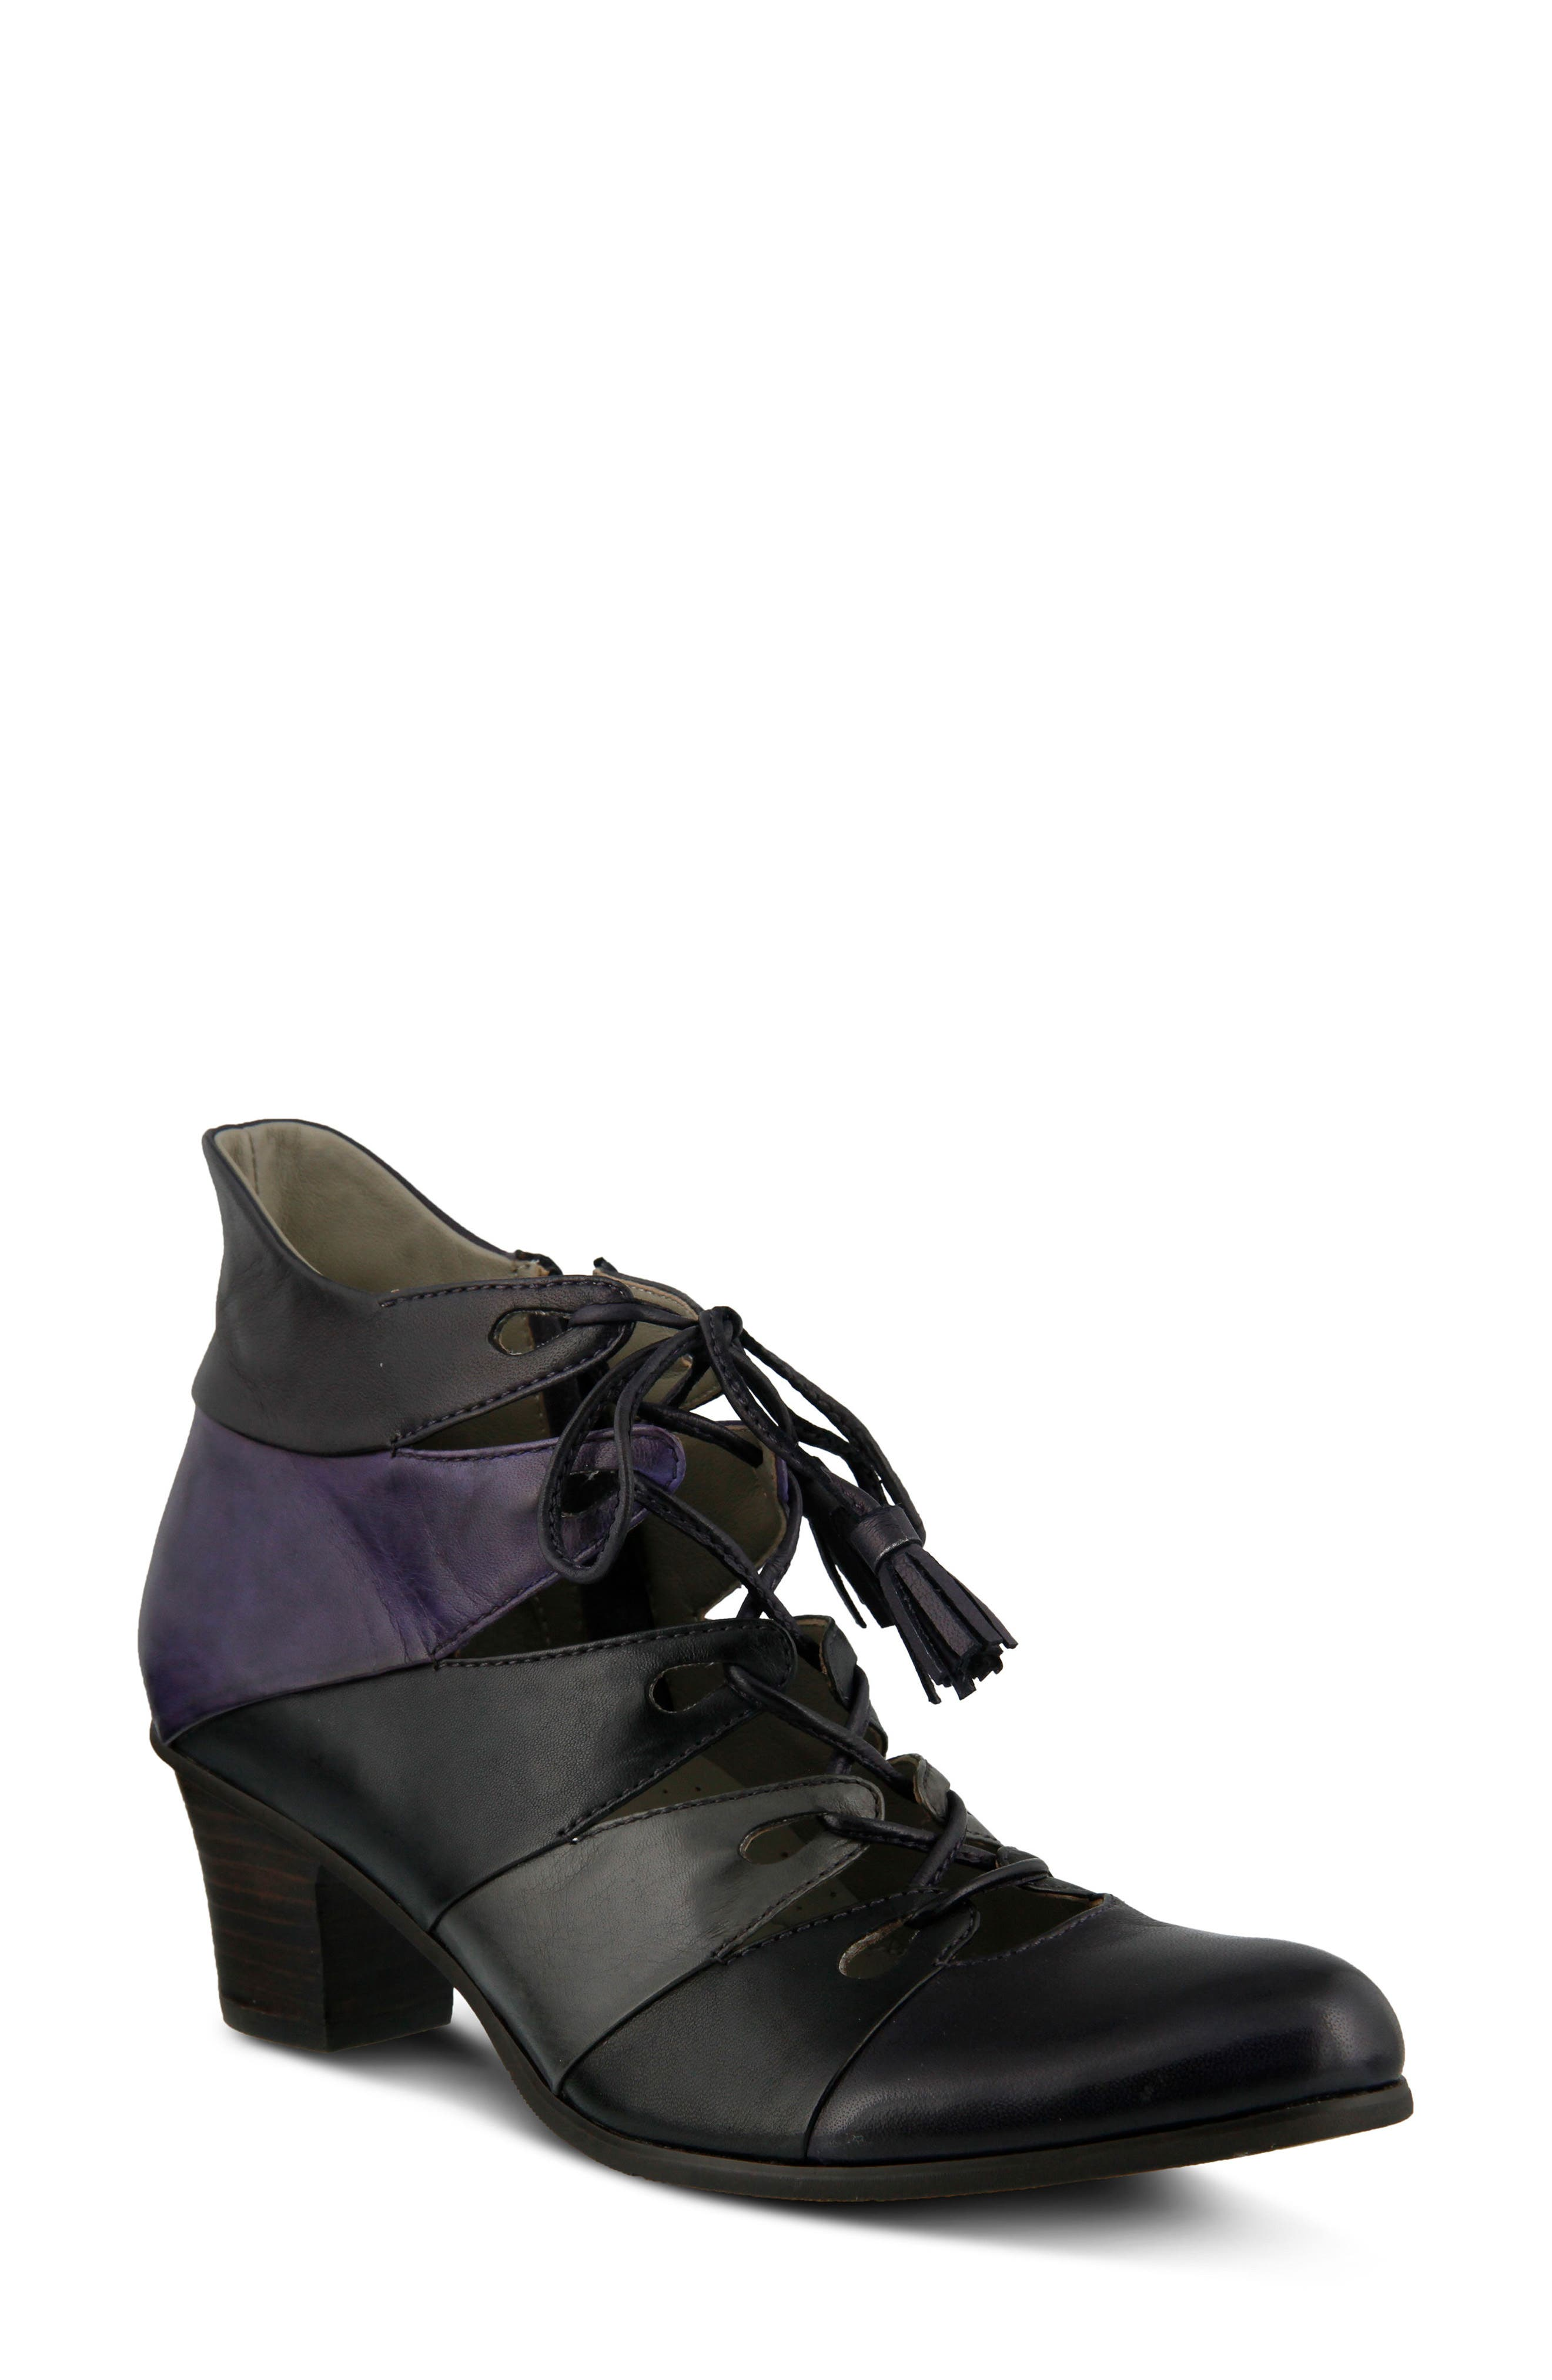 Estrela Ghillie Bootie,                             Main thumbnail 1, color,                             PURPLE MULTI LEATHER